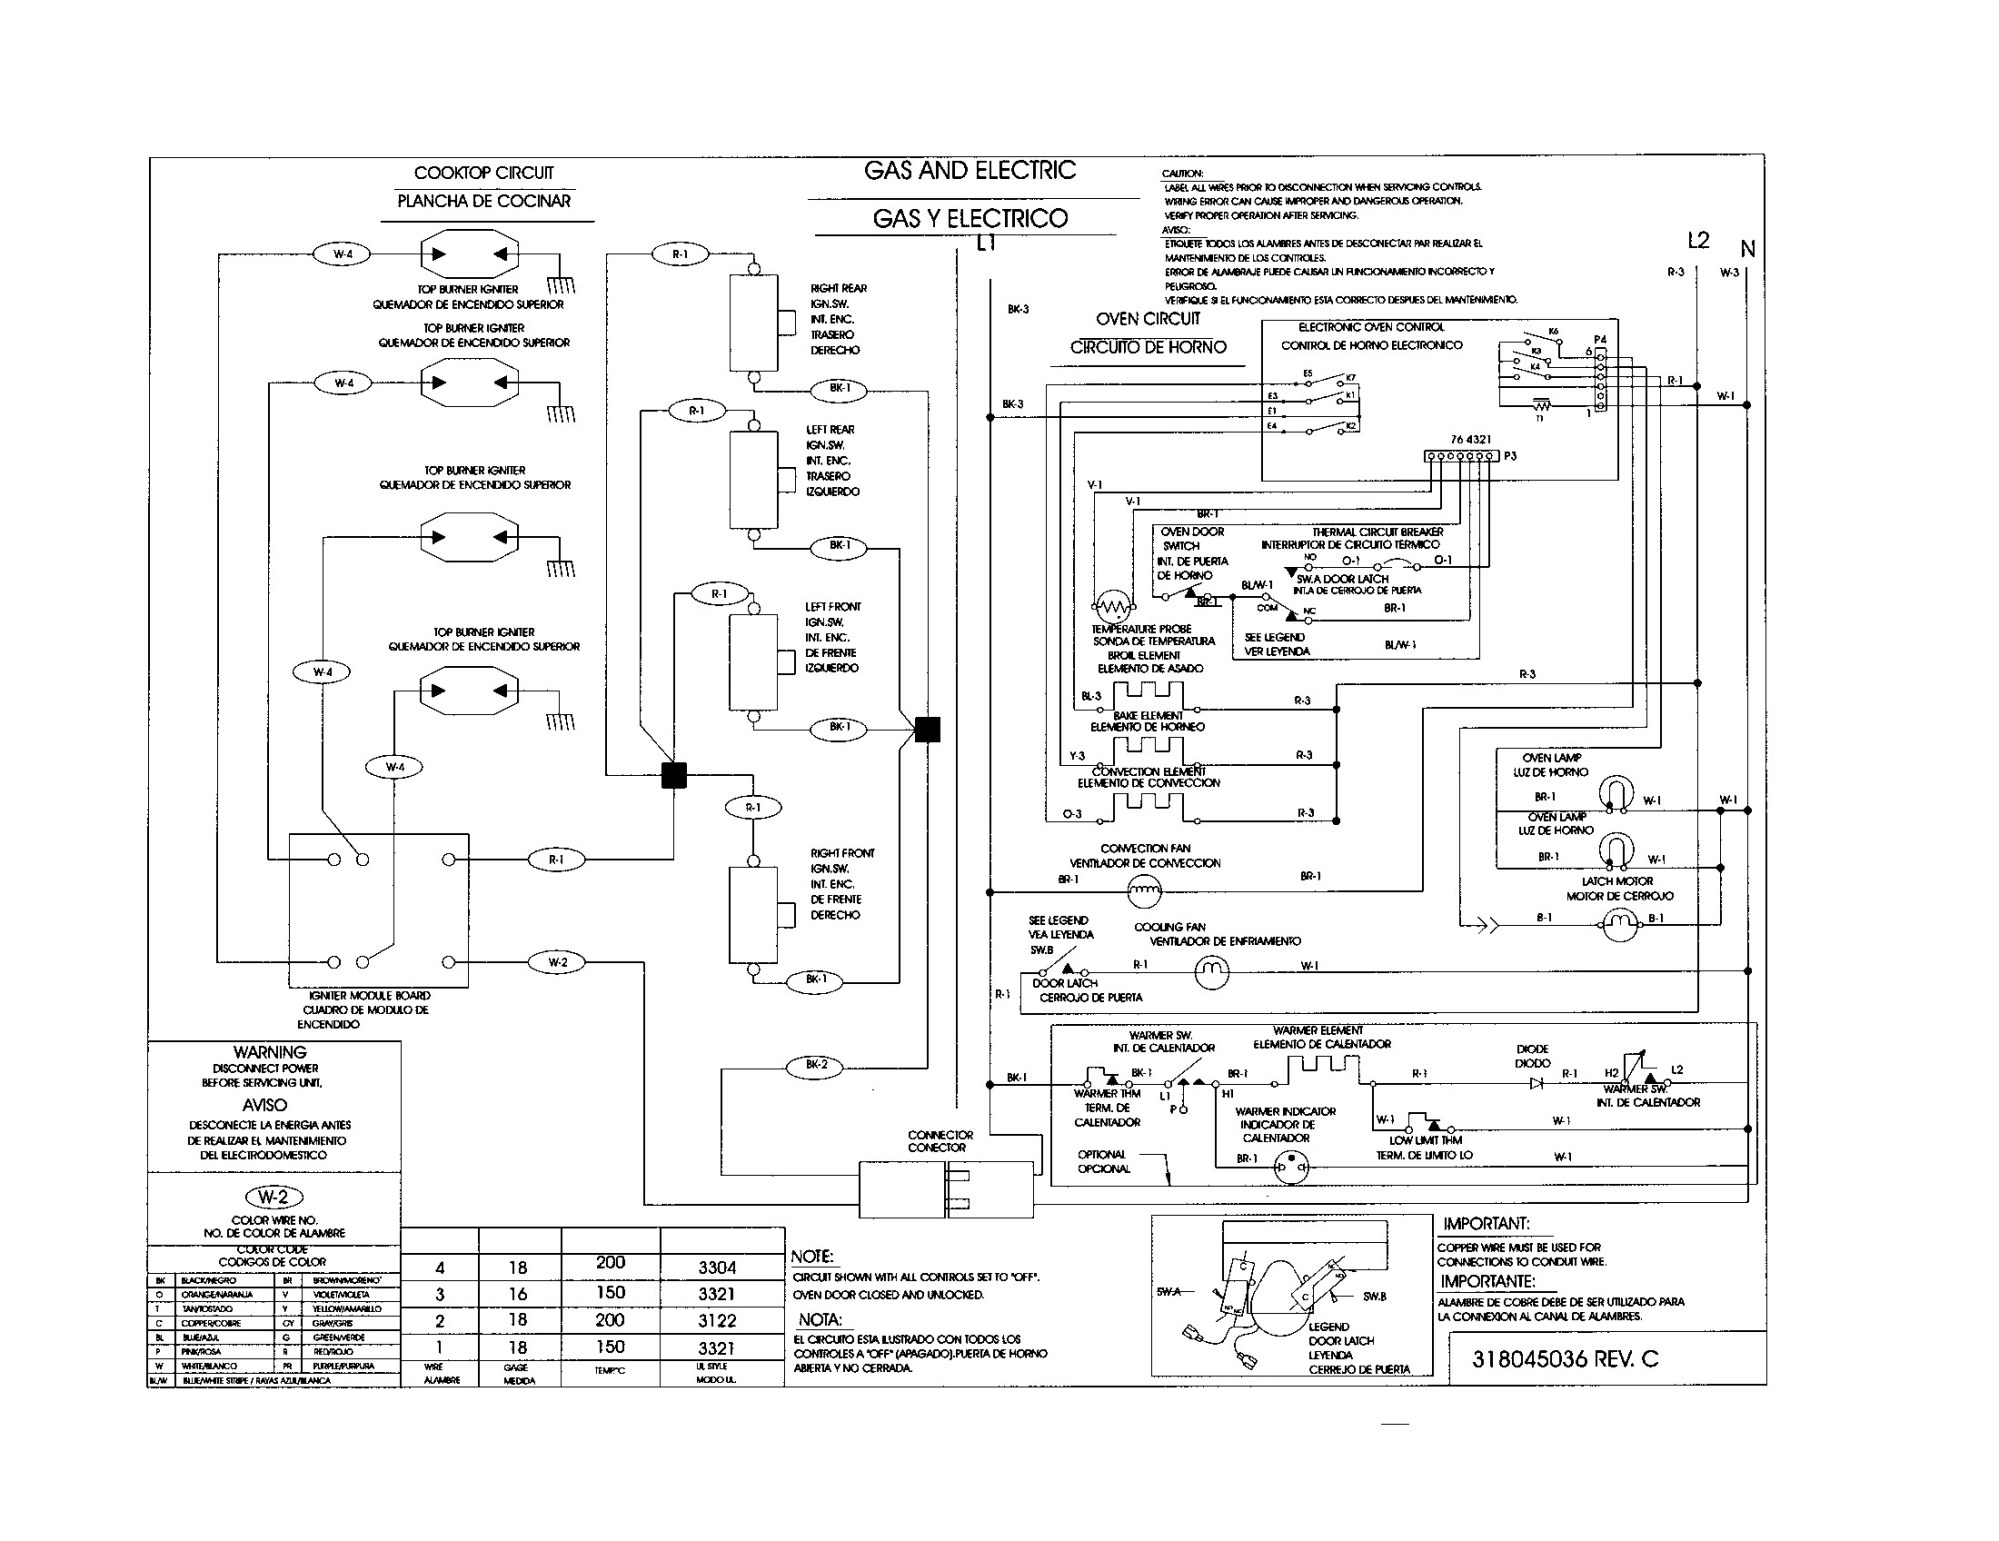 hight resolution of kenmore 3 prong dryer wiring diagram free download wiring diagrams kenmore 3 prong dryer wiring diagram free download